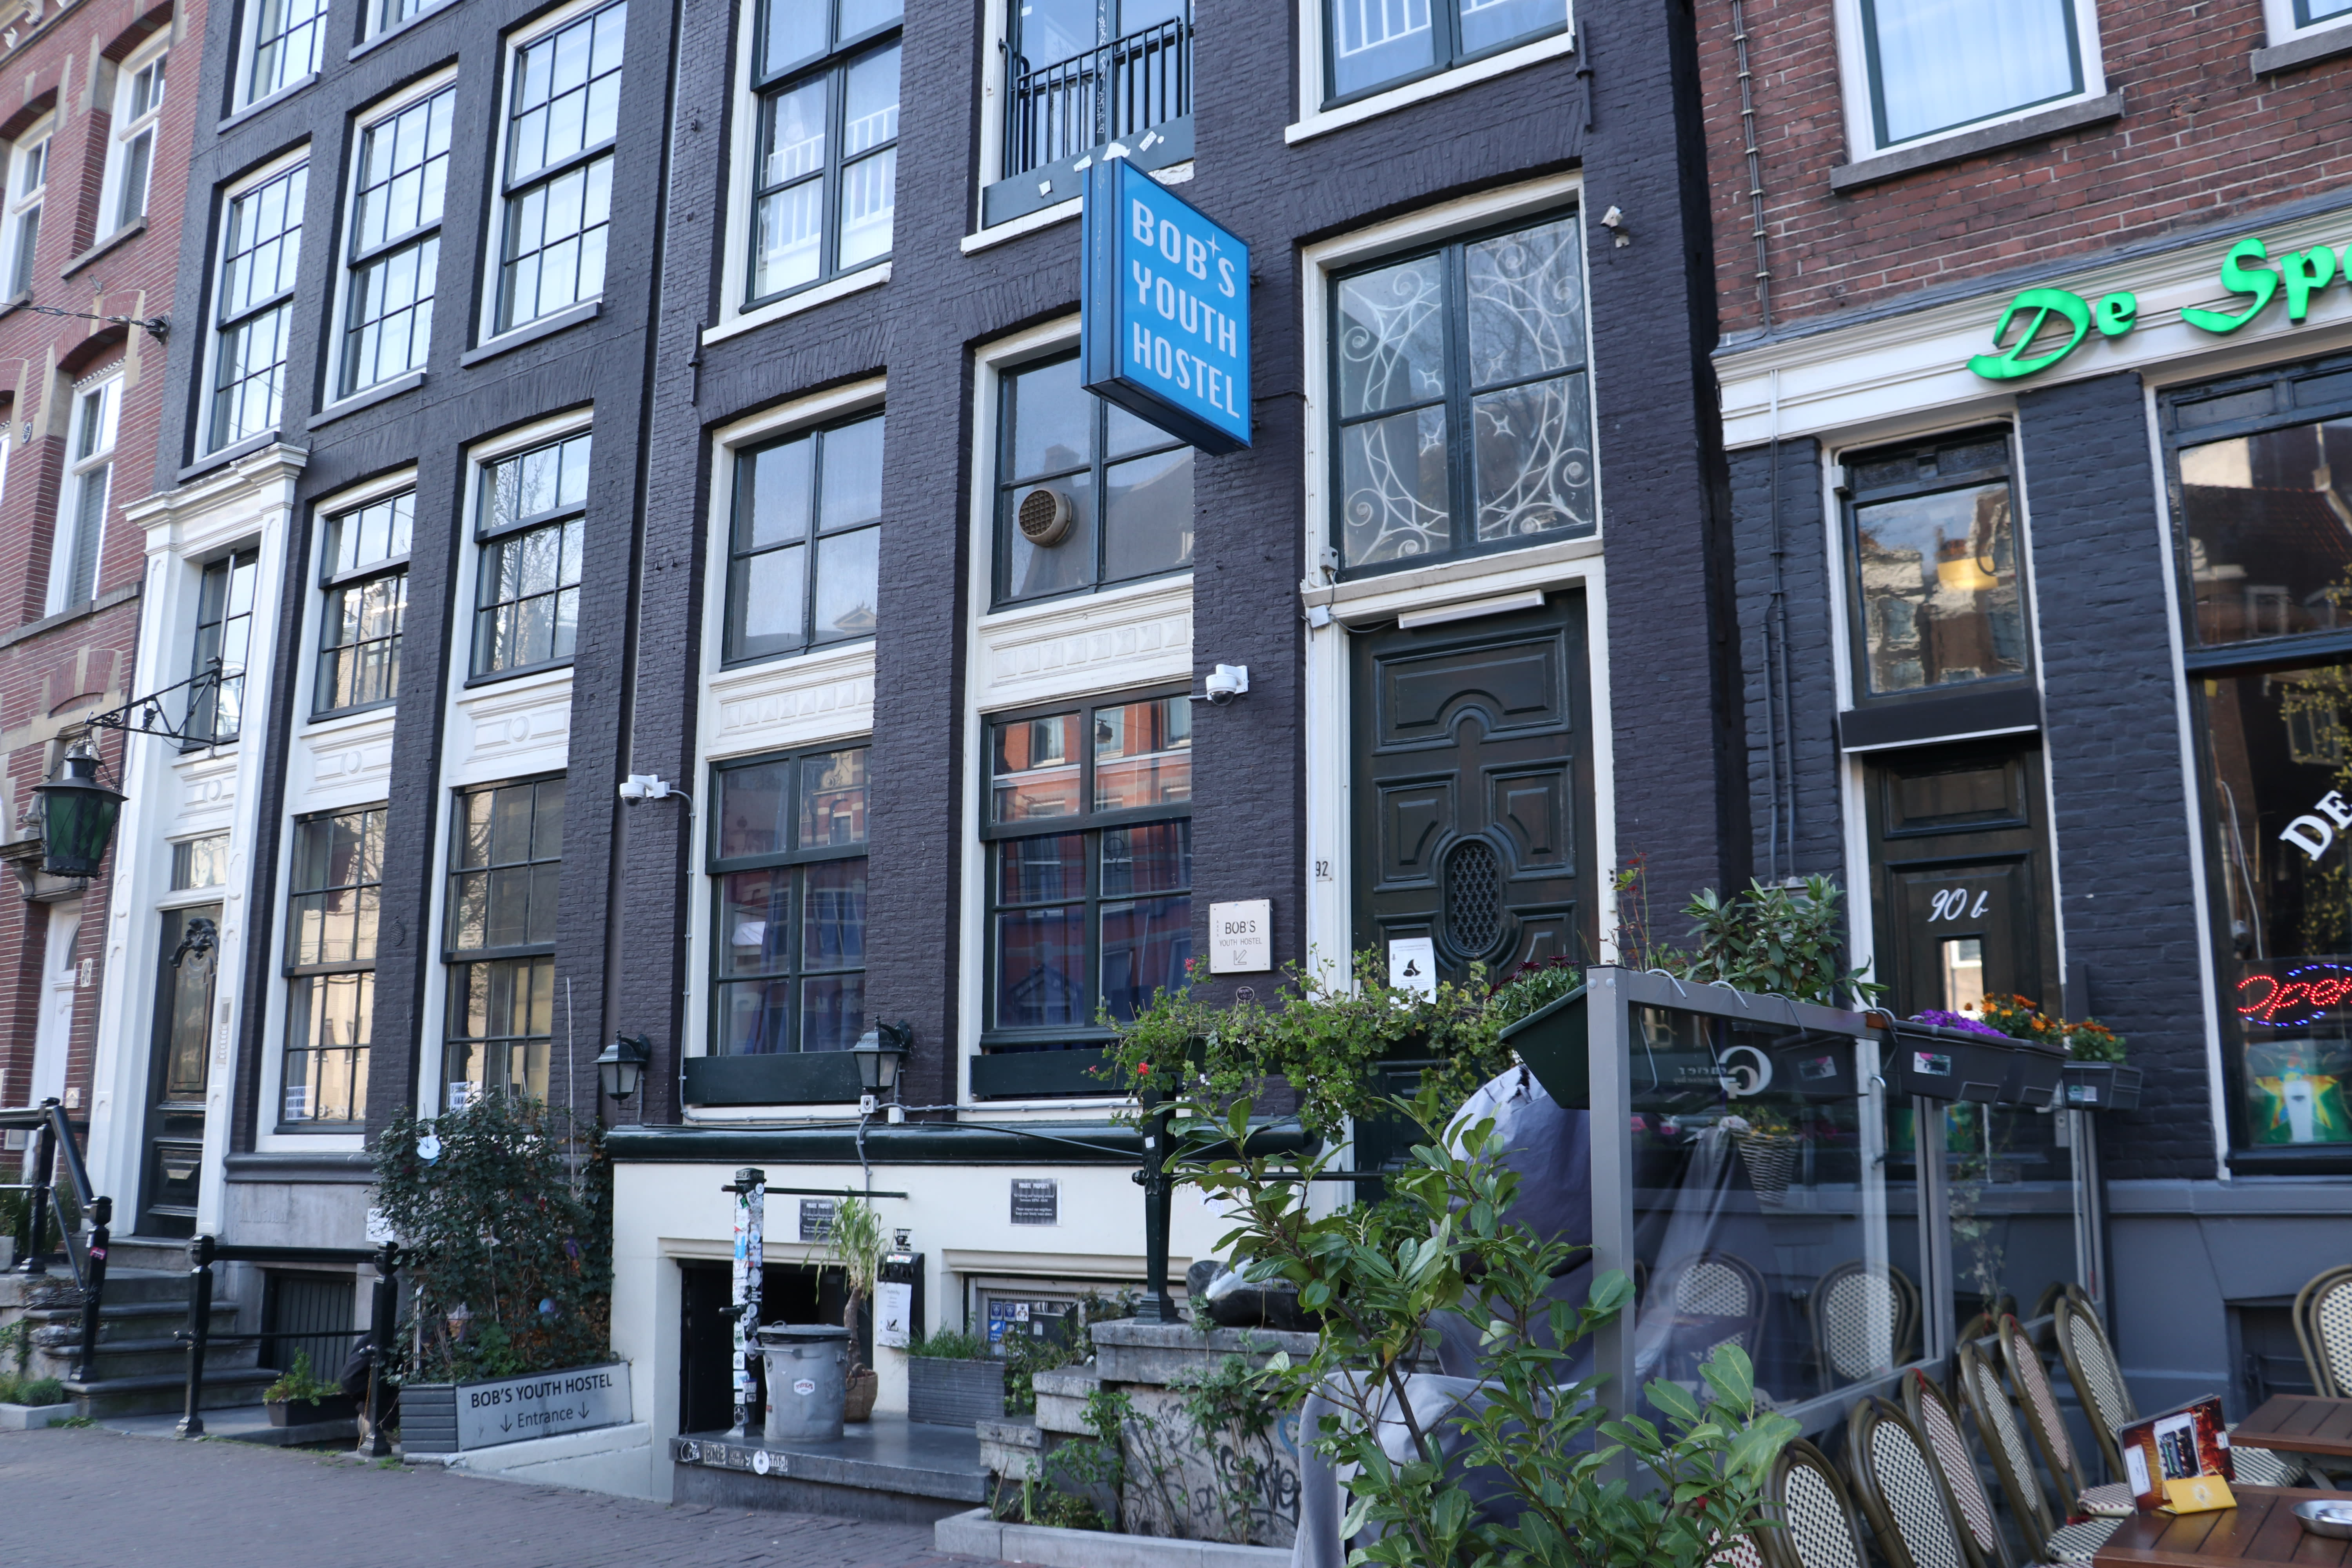 Bob S Youth Hostel Amsterdam 2021 Prices Reviews Hostelworld